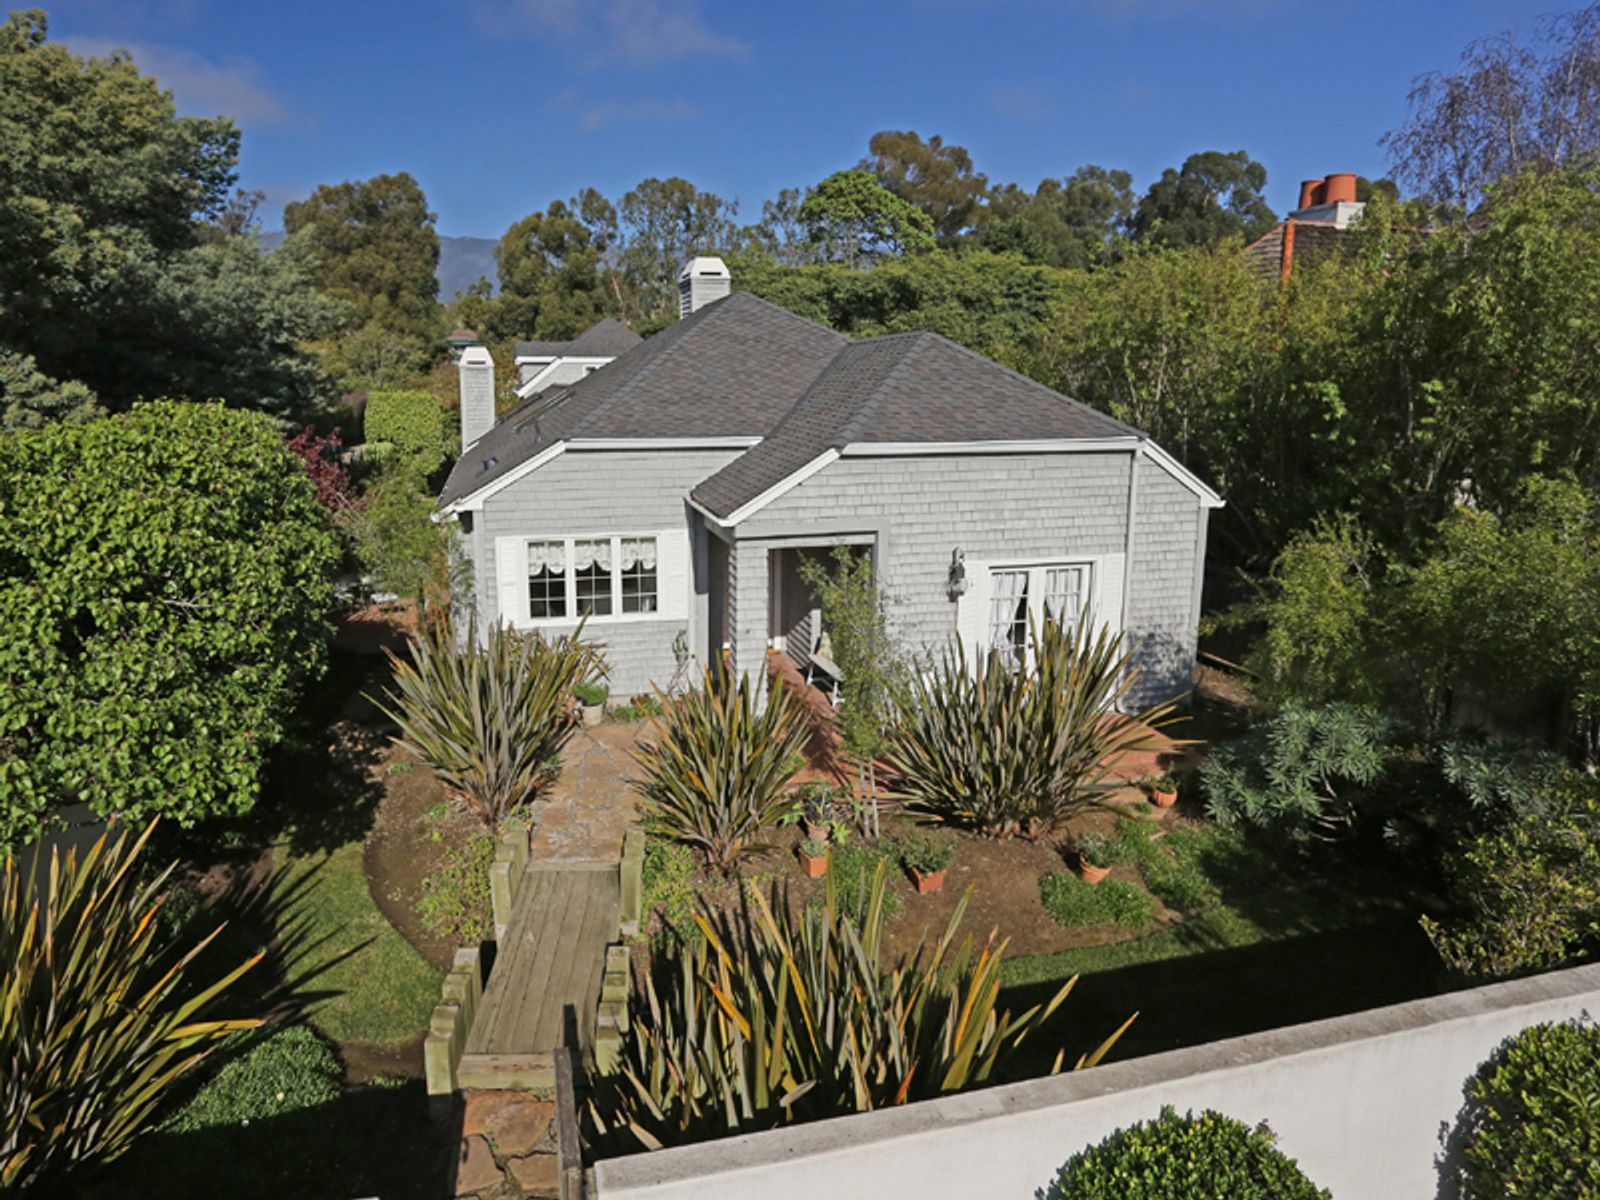 Prime Coastal Living, Montecito CA Single Family Home - Santa Barbara Real Estate